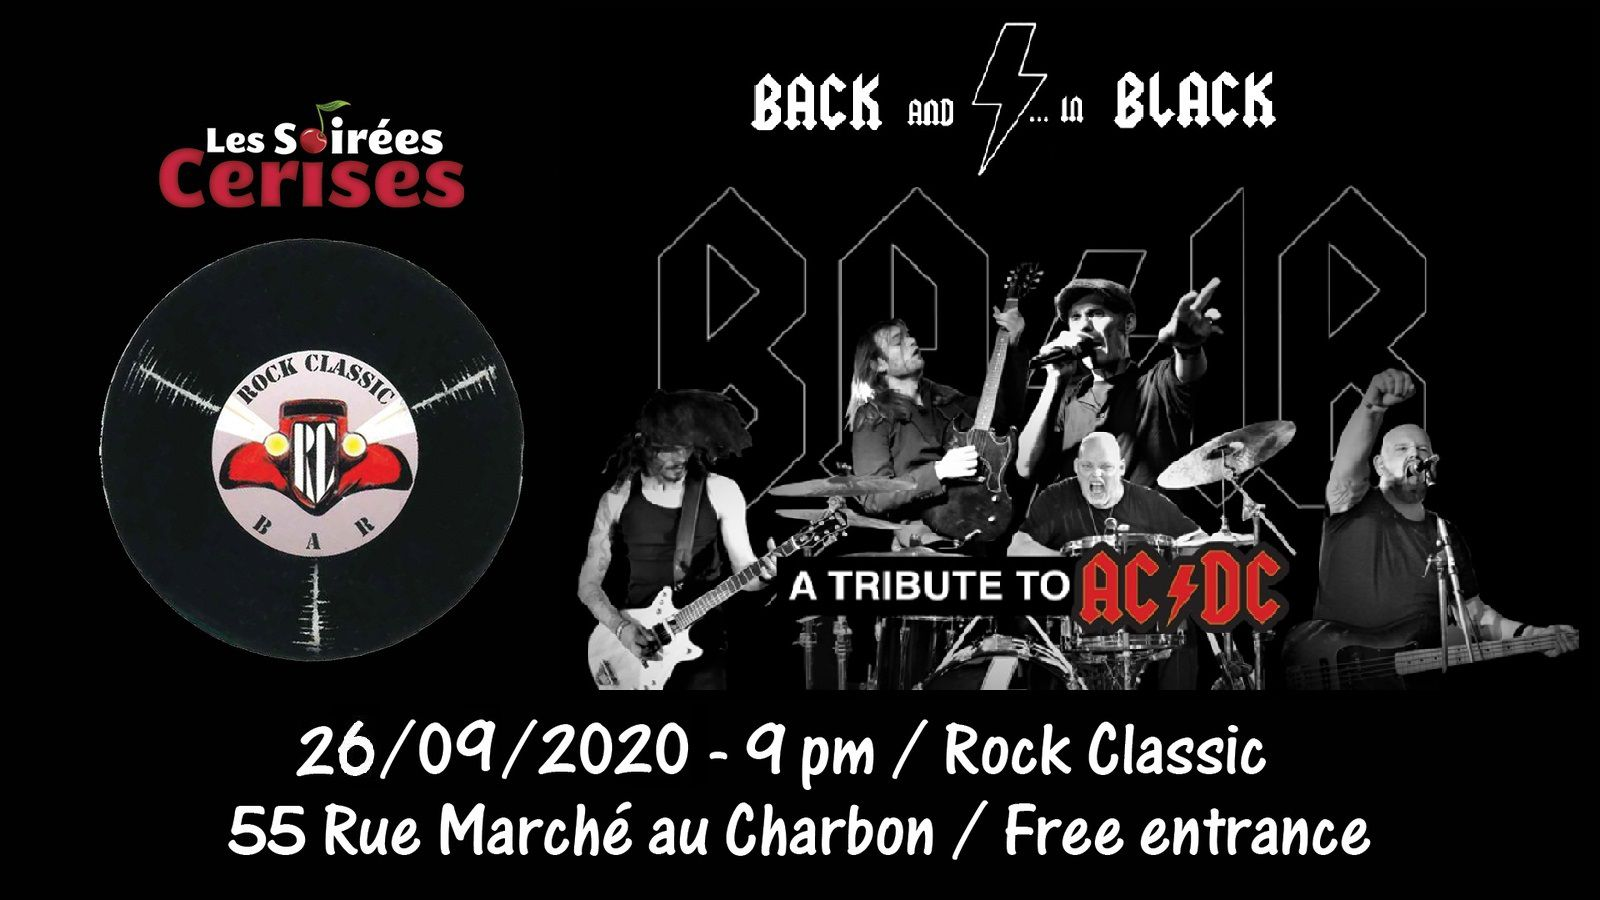 🎵 Back And in Black (AC/DC tribute band) @ Rock Classic - 26/09/2020 - 21h00 - Entrée gratuite / Free entrance